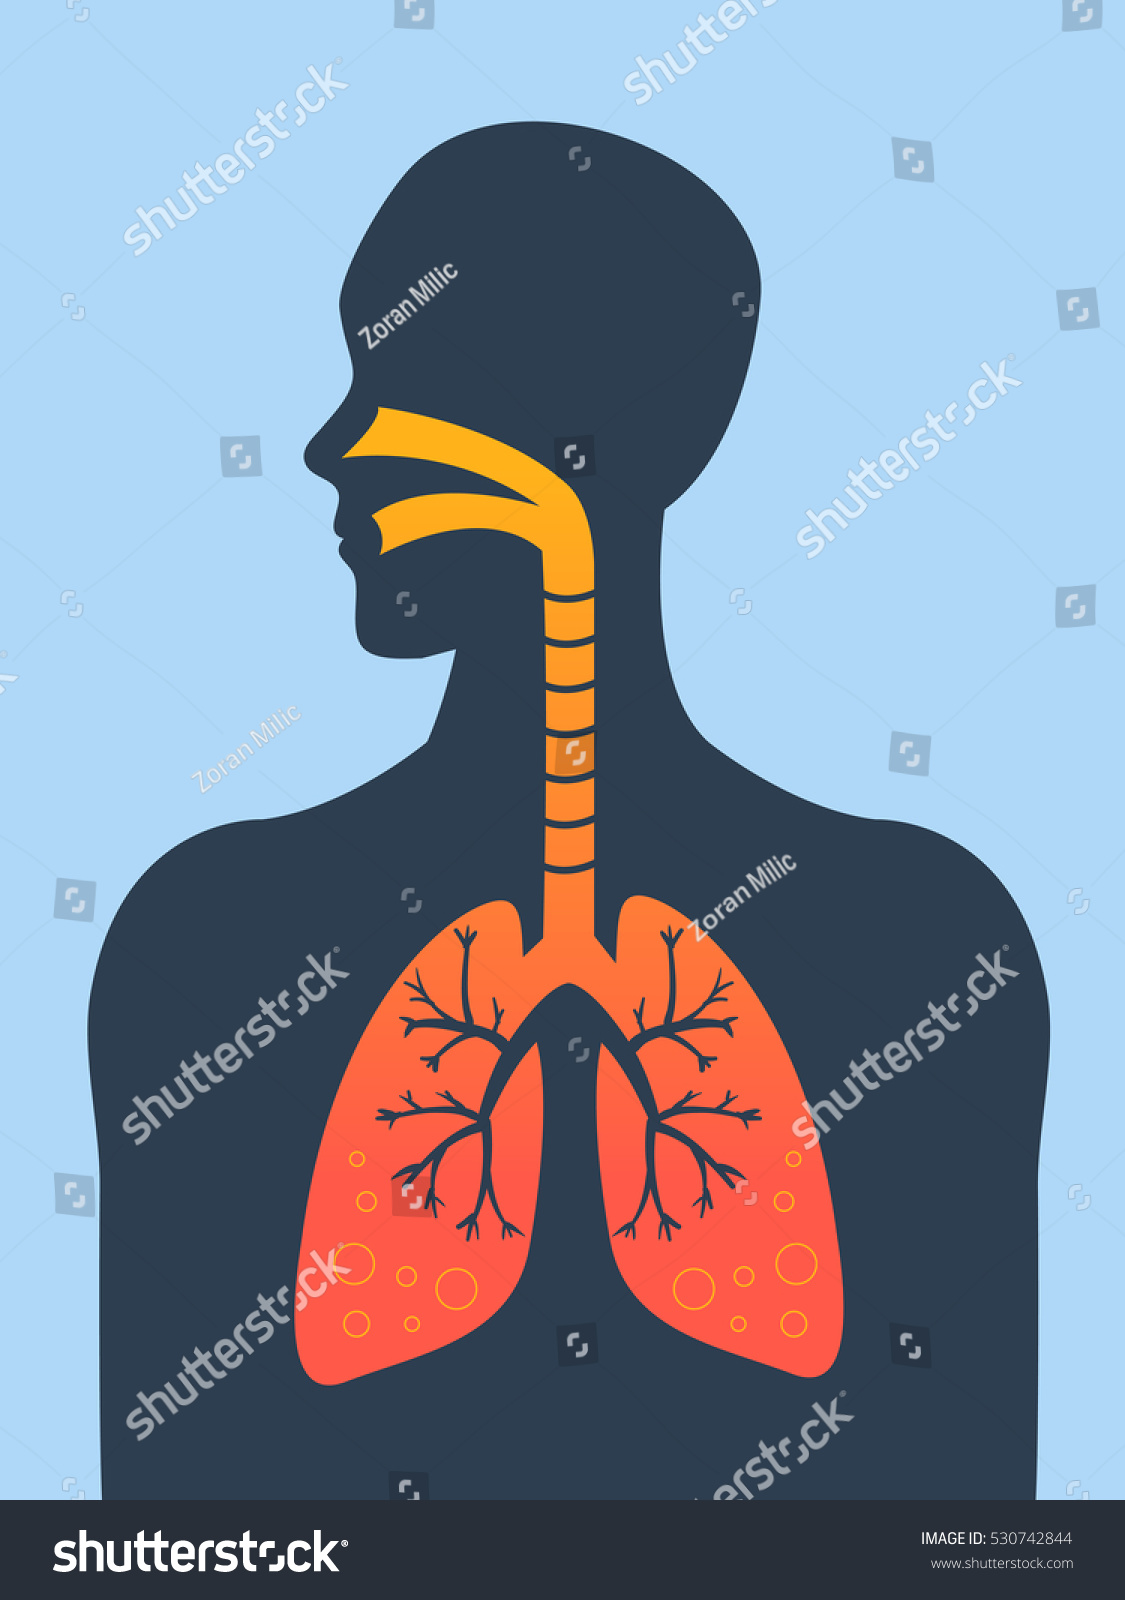 Human Silhouette Inflamed Respiratory System Lungs Stock Vector ...